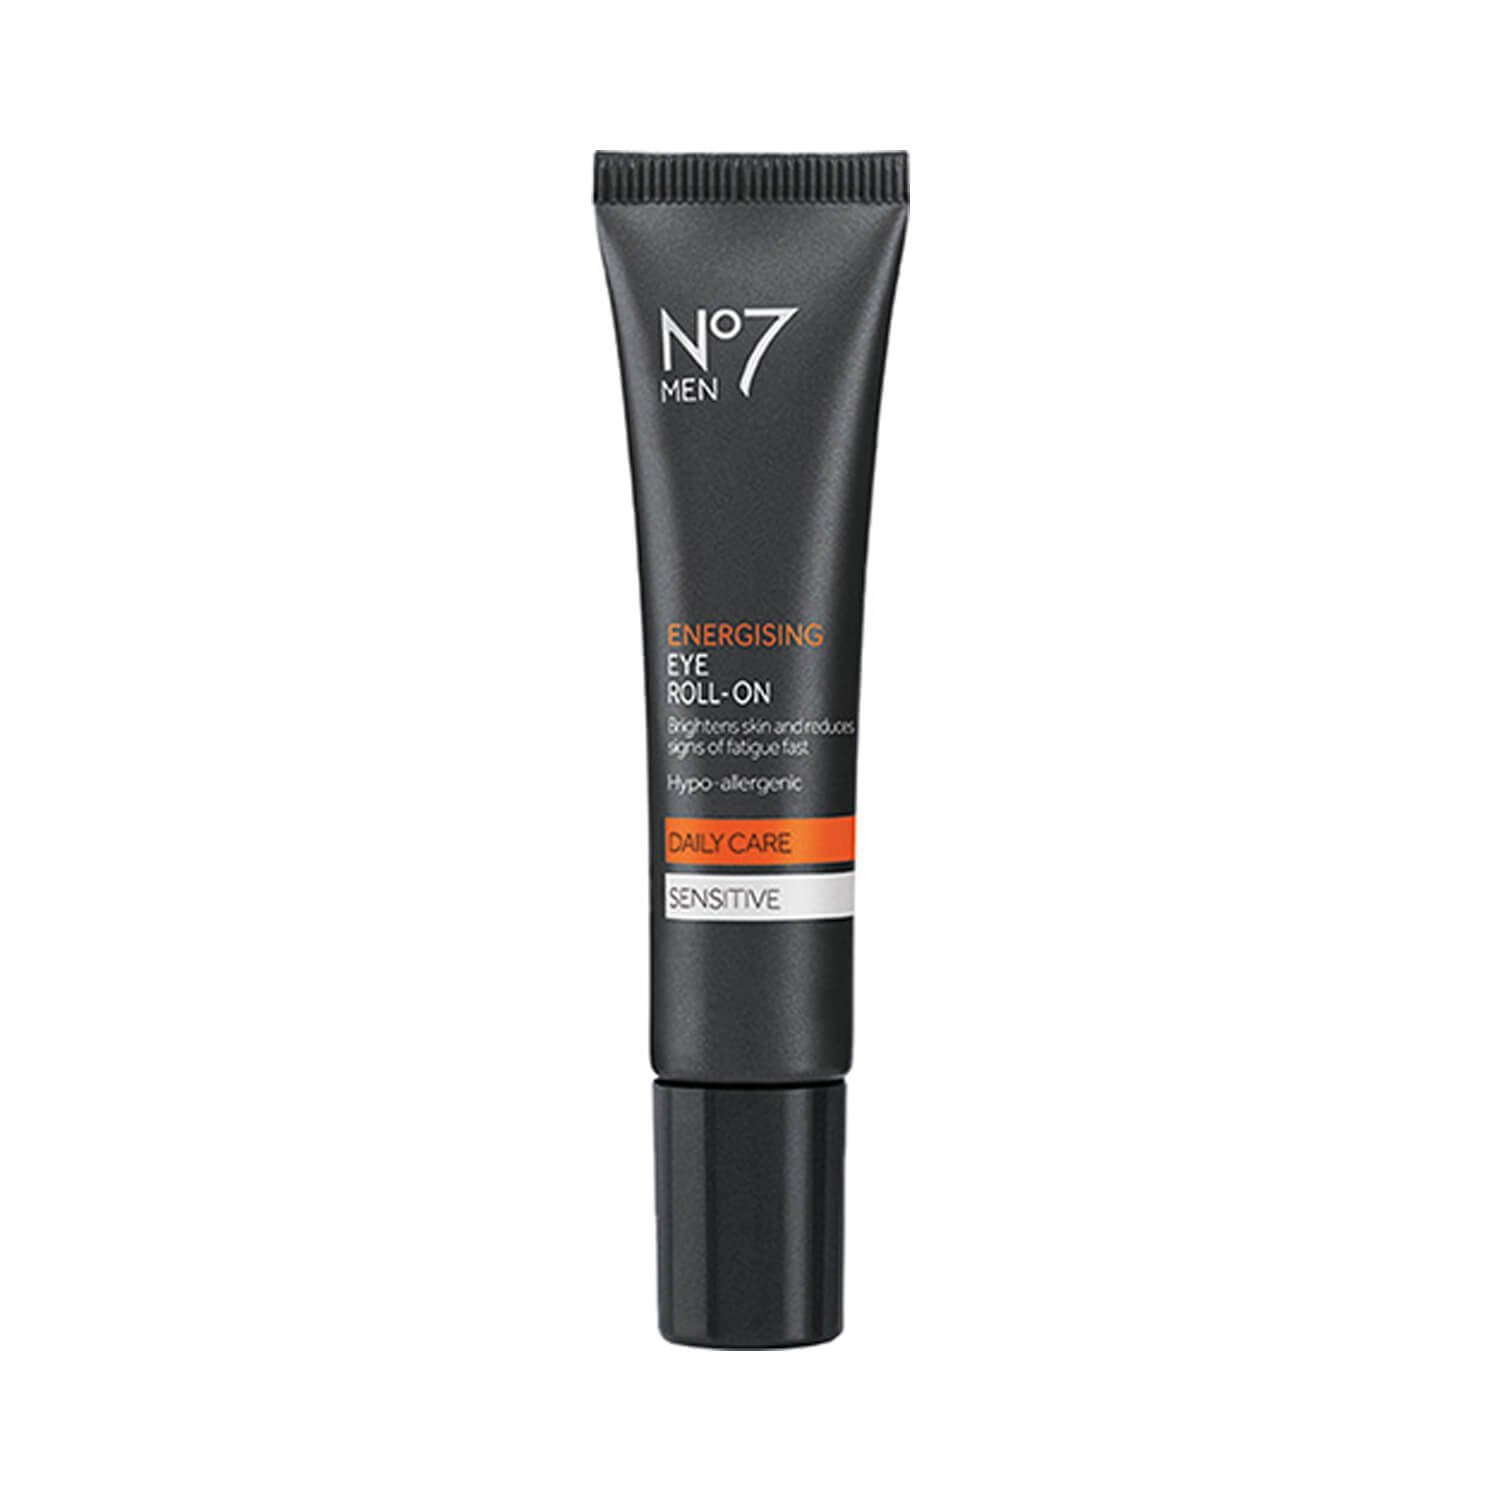 No7 Men Energising Eye Roll-On 0.5oz/15ml